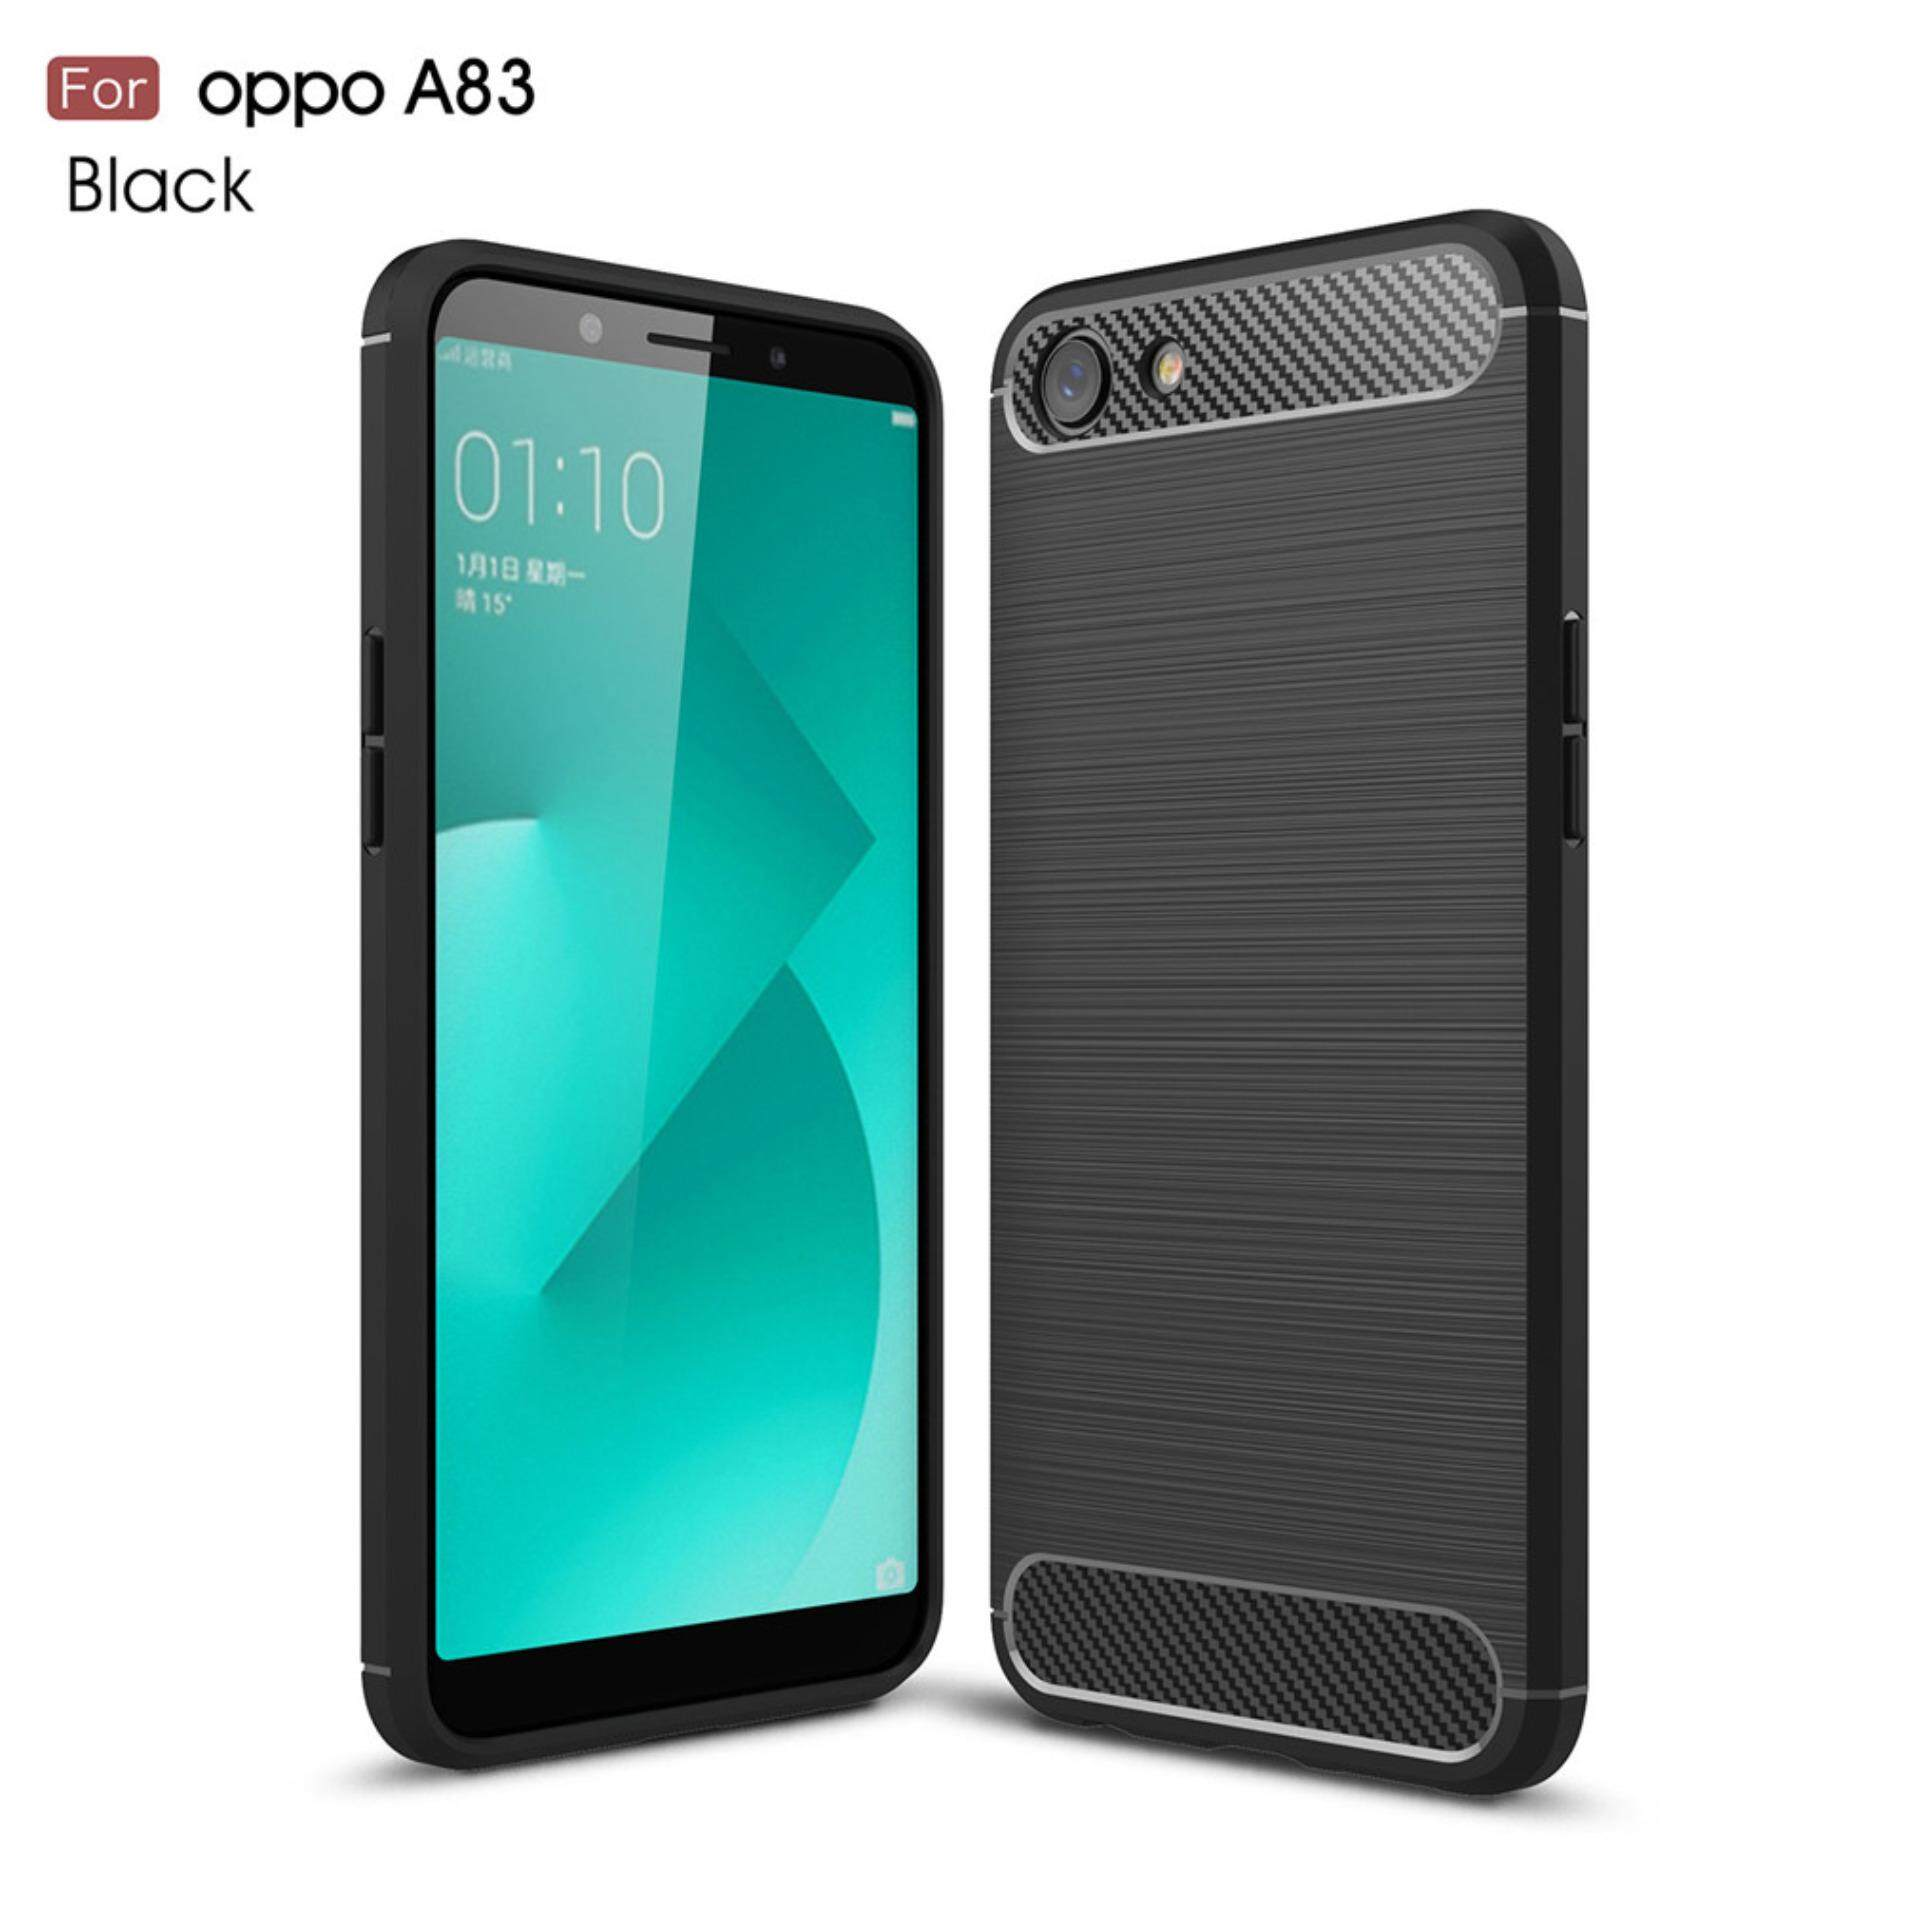 ราคา Kunpon For Oppo A83 Case Rugged Armor With Resilient Shock Absorption And Carbon Fiber Tpu Non Slip Anti Scratch Ultra Slim Cover Case For Oppo A83 Matte Black Intl Kunpon เป็นต้นฉบับ